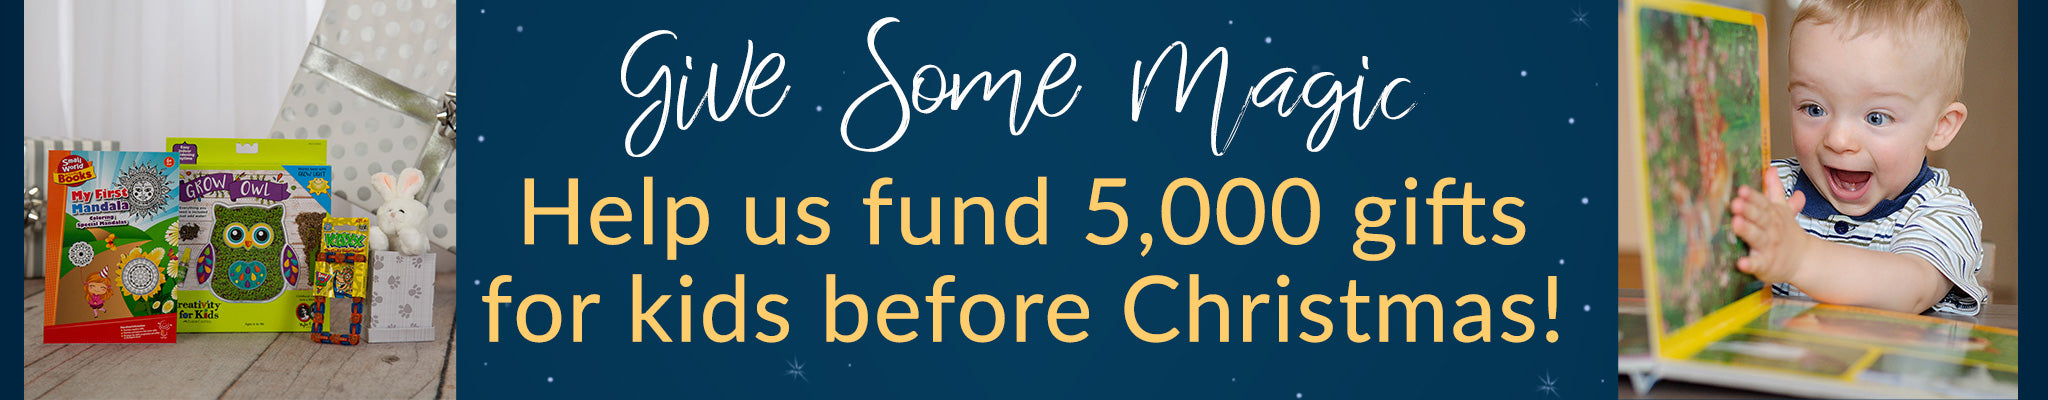 Help us fund 5,000 gifts for kids before Christmas! | Give Some Magic